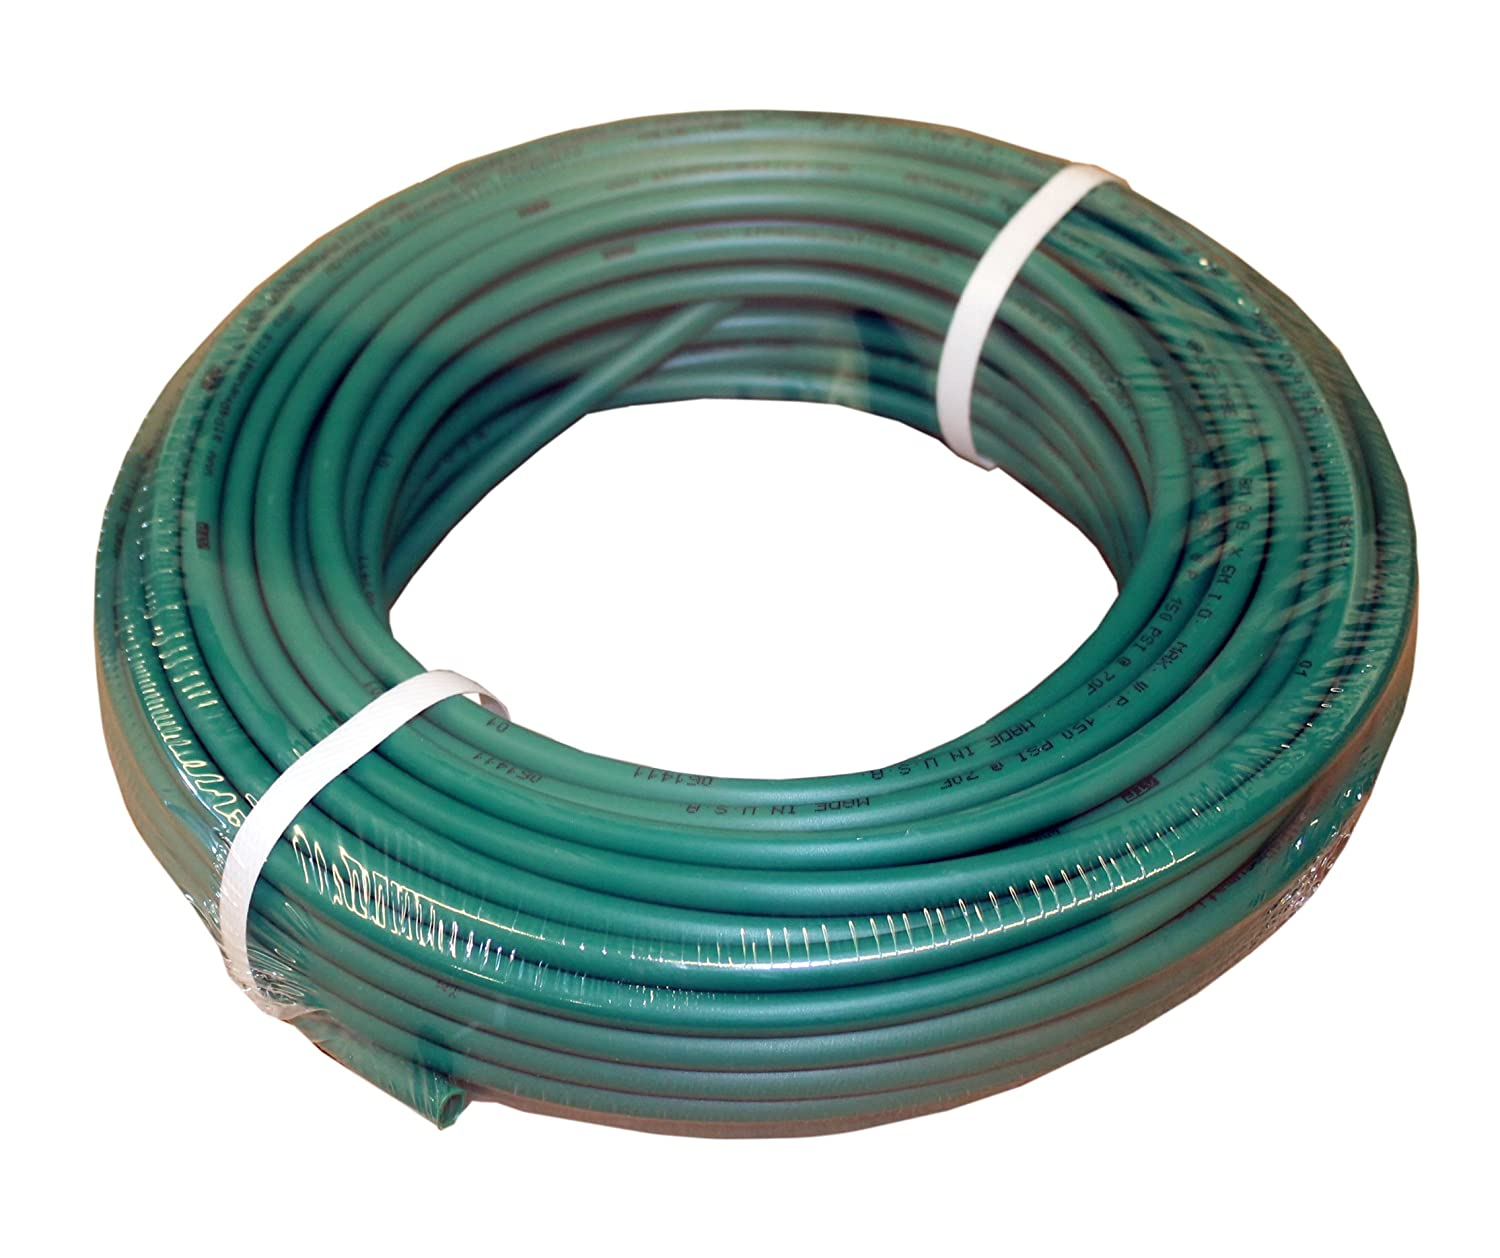 ATP IMBIBE NSF 61 Polyethylene Plastic Tubing, Green, 11/64' ID x 1/4' OD, 100 feet Length 11/64 ID x 1/4 OD Advanced Technology Products (ATP)